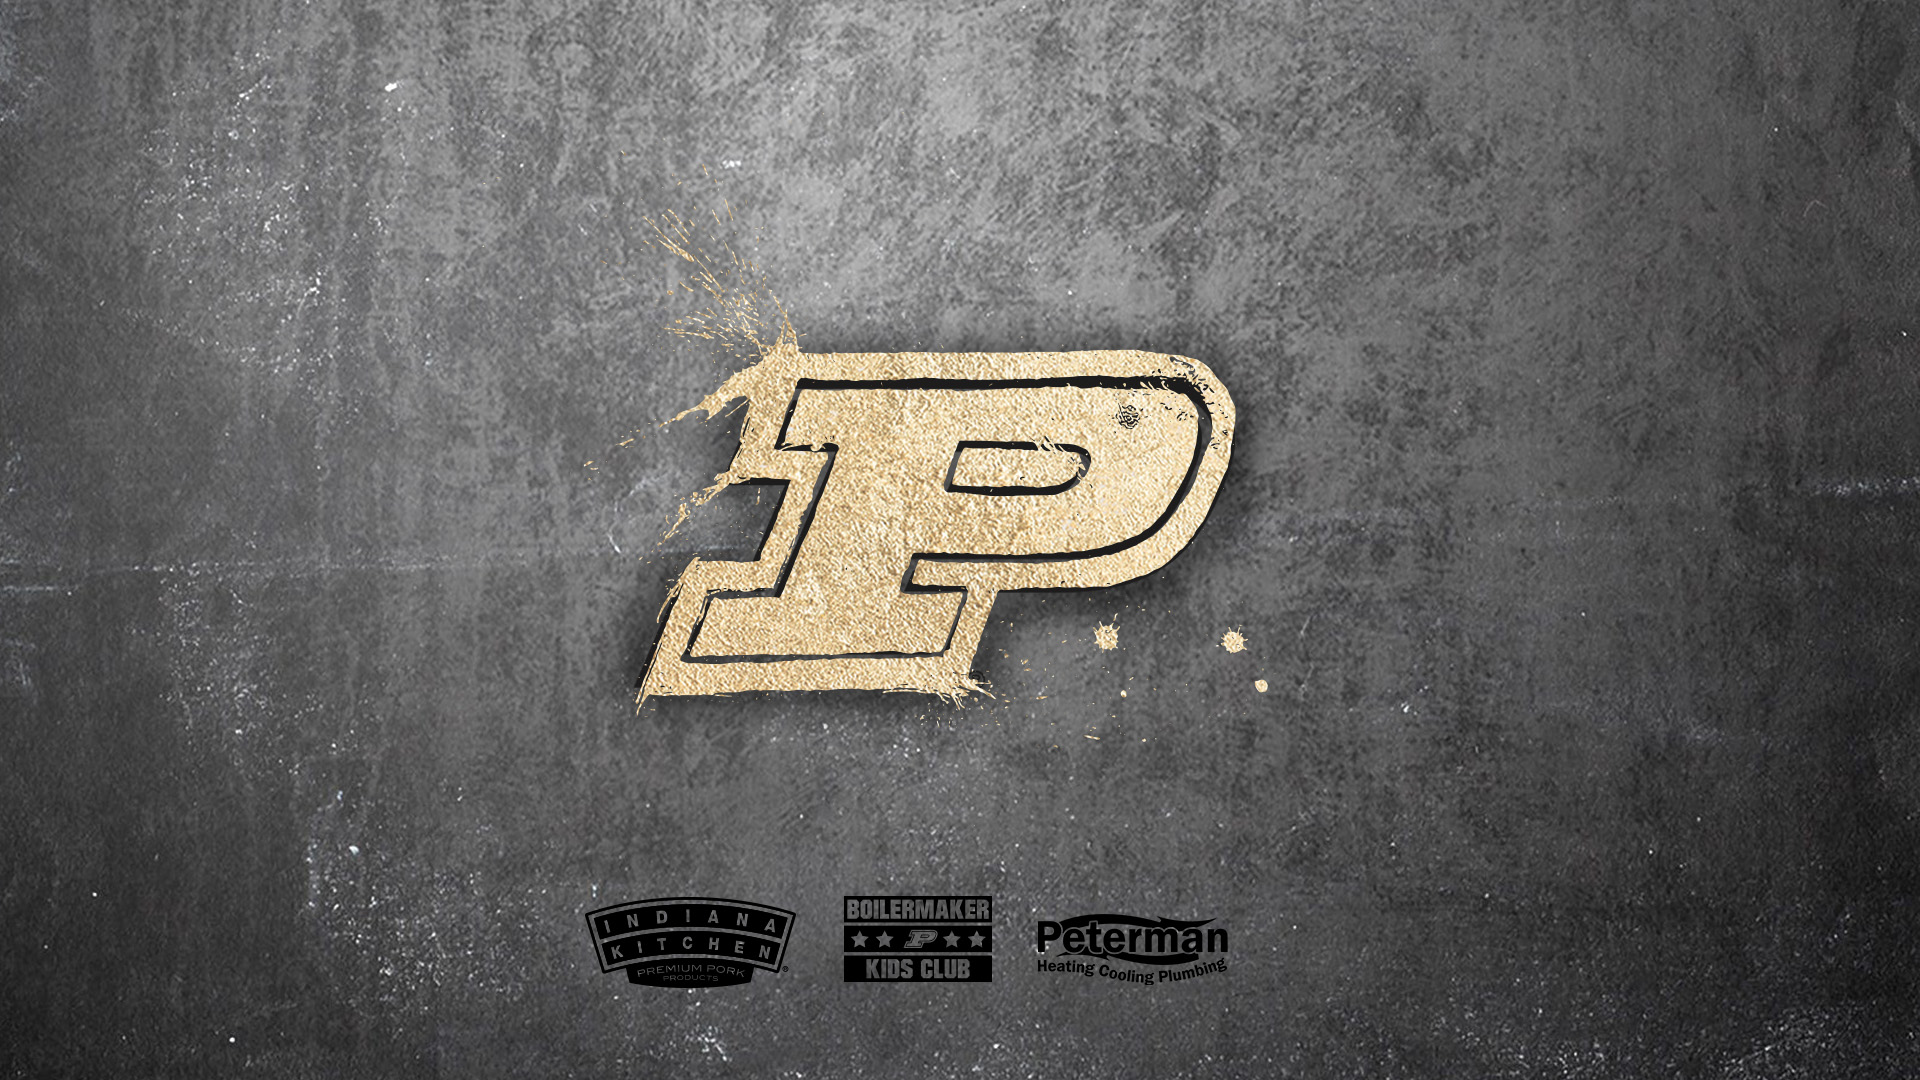 Boilermaker Kids Club   Purdue University Athletics 1920x1080